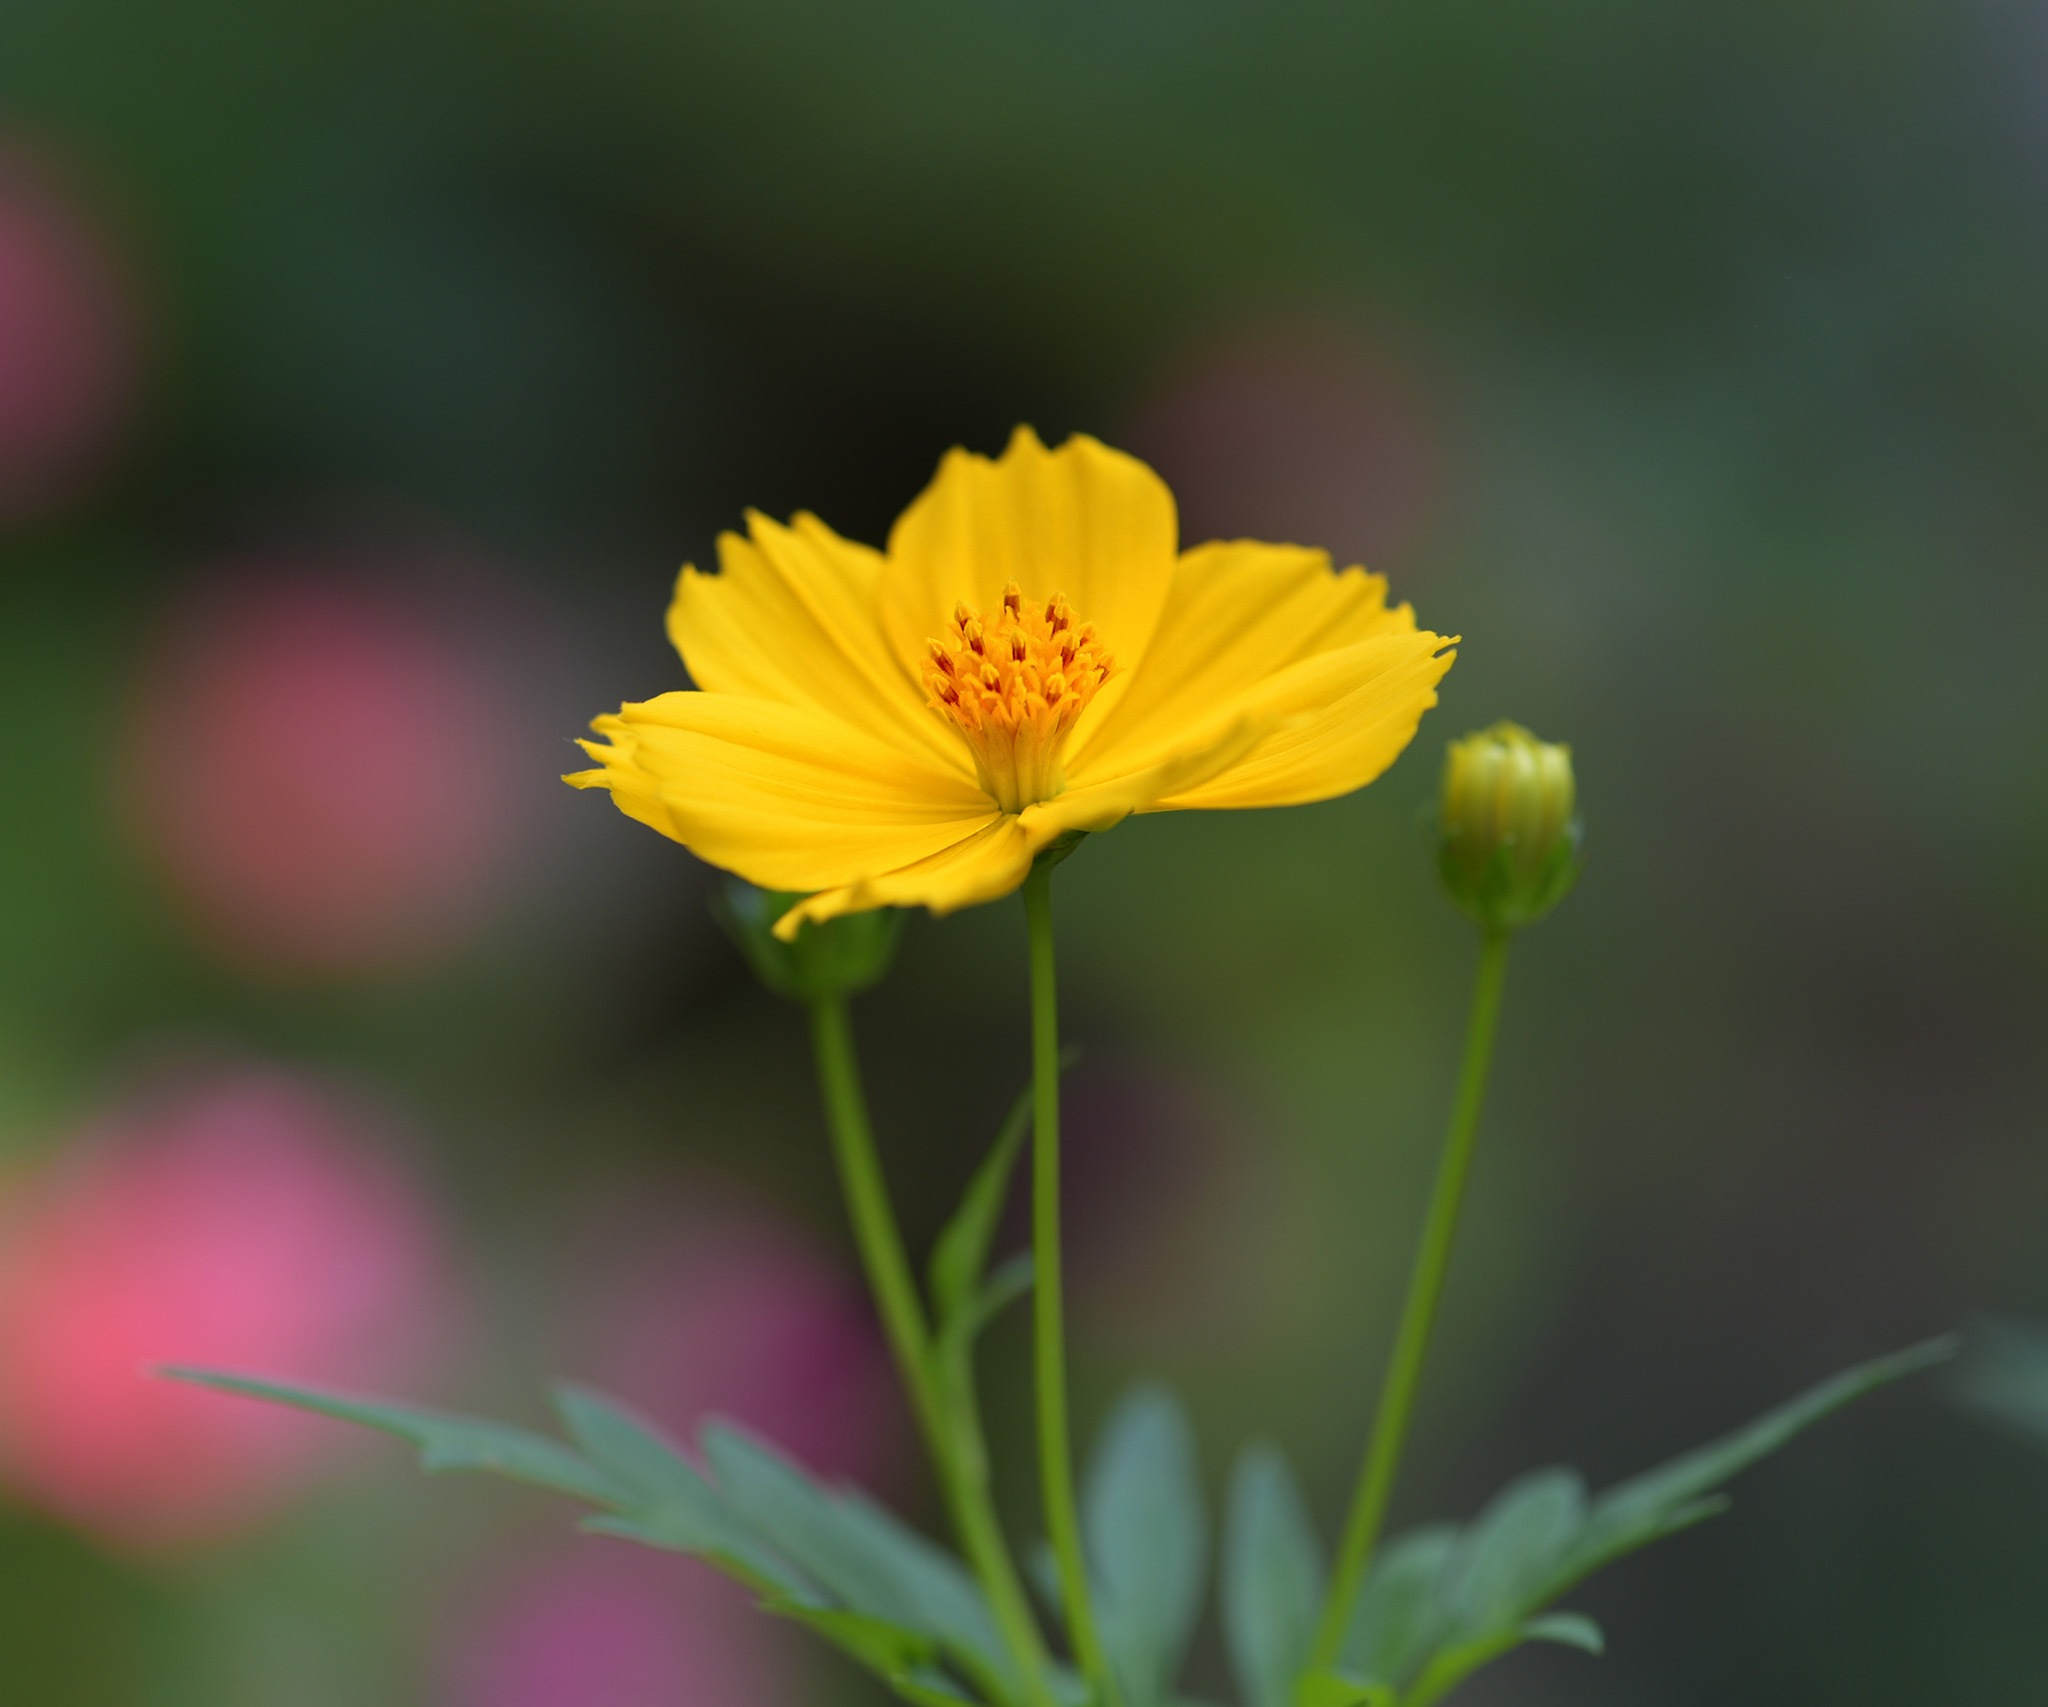 yellow flower by lequangchi